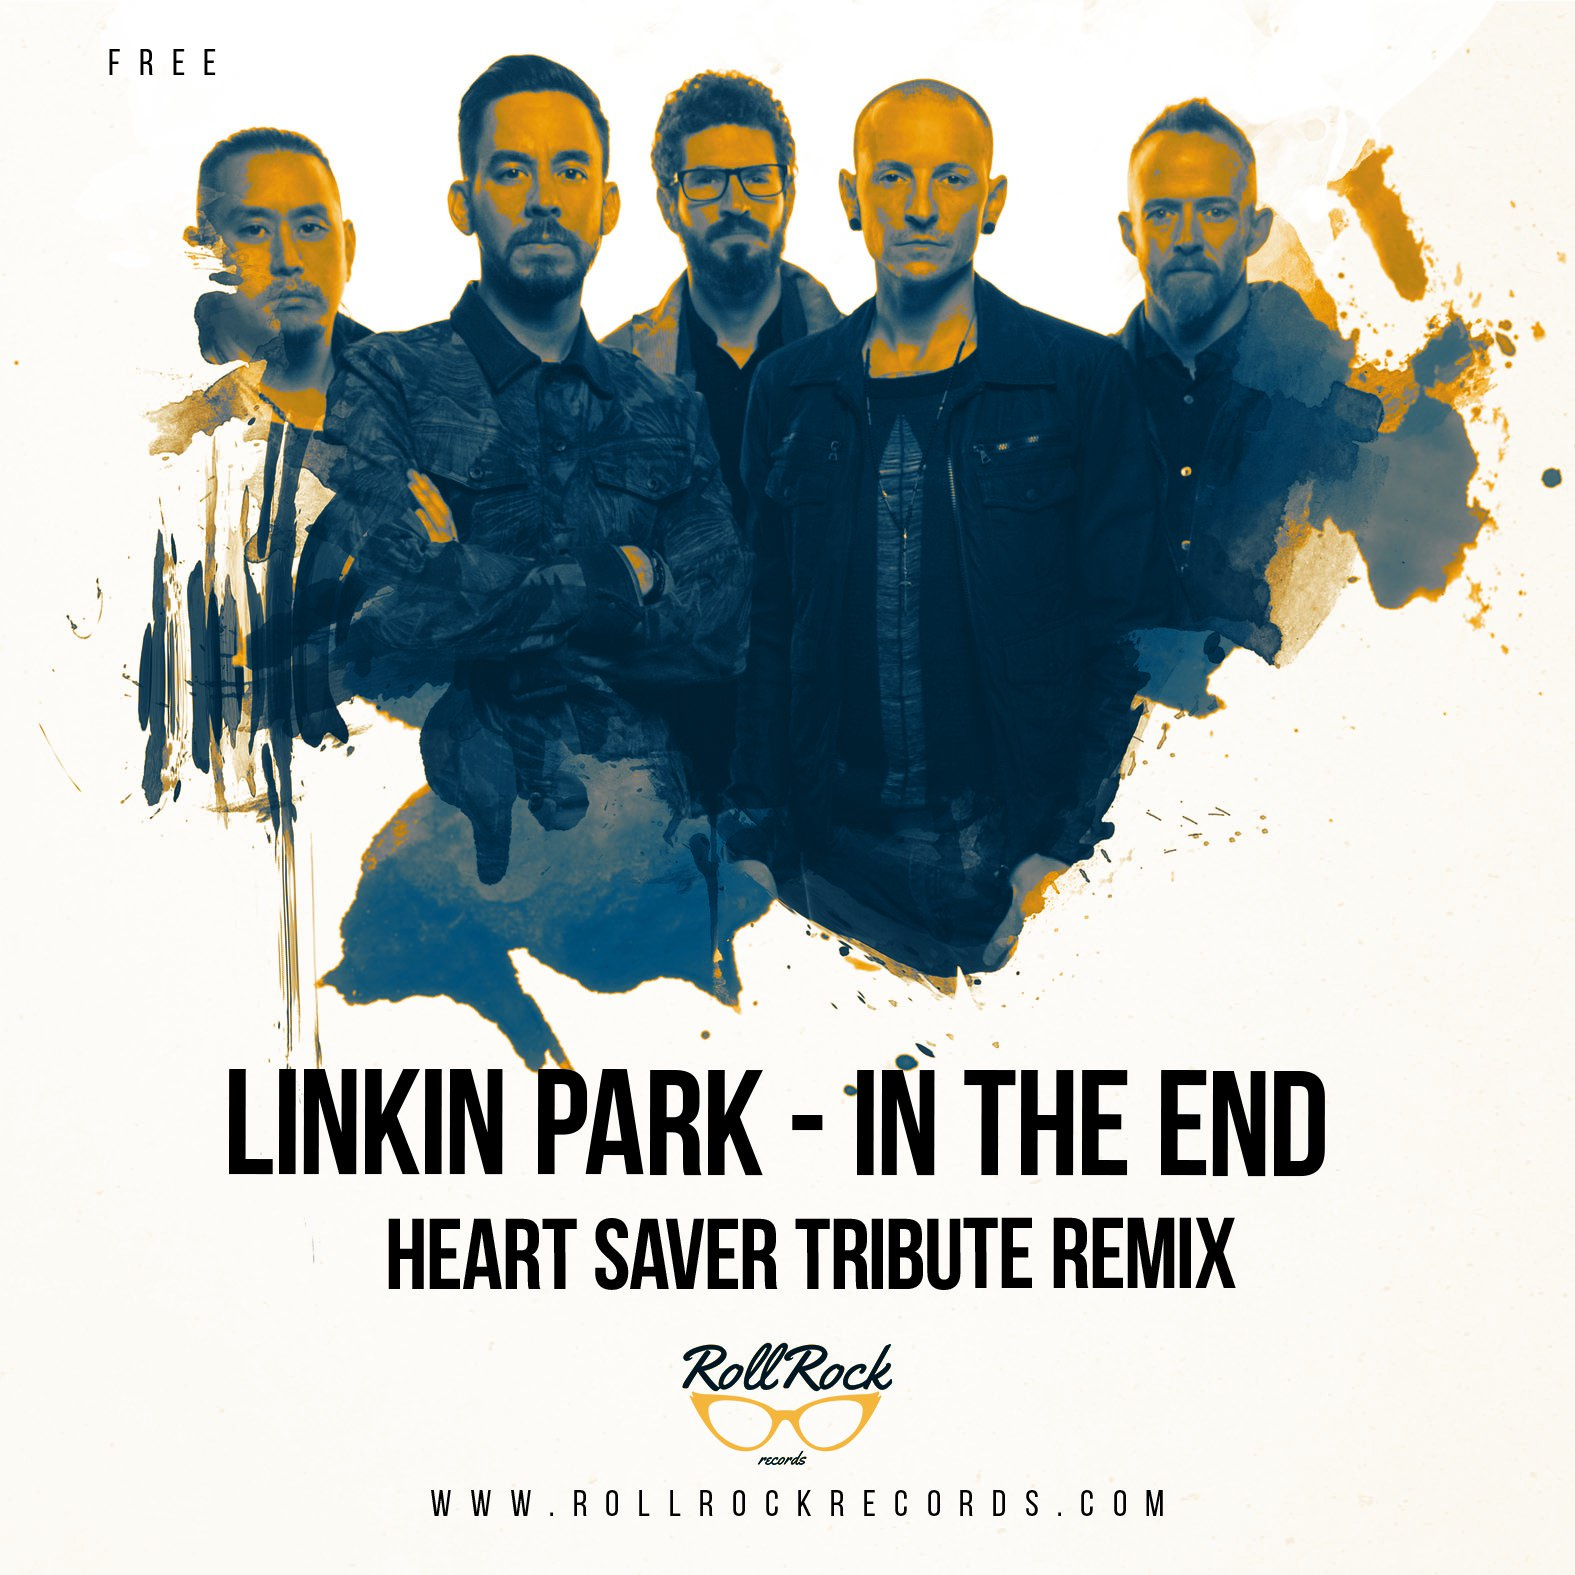 Linkin Park - In The End  (Heart Saver Tribute Remix)